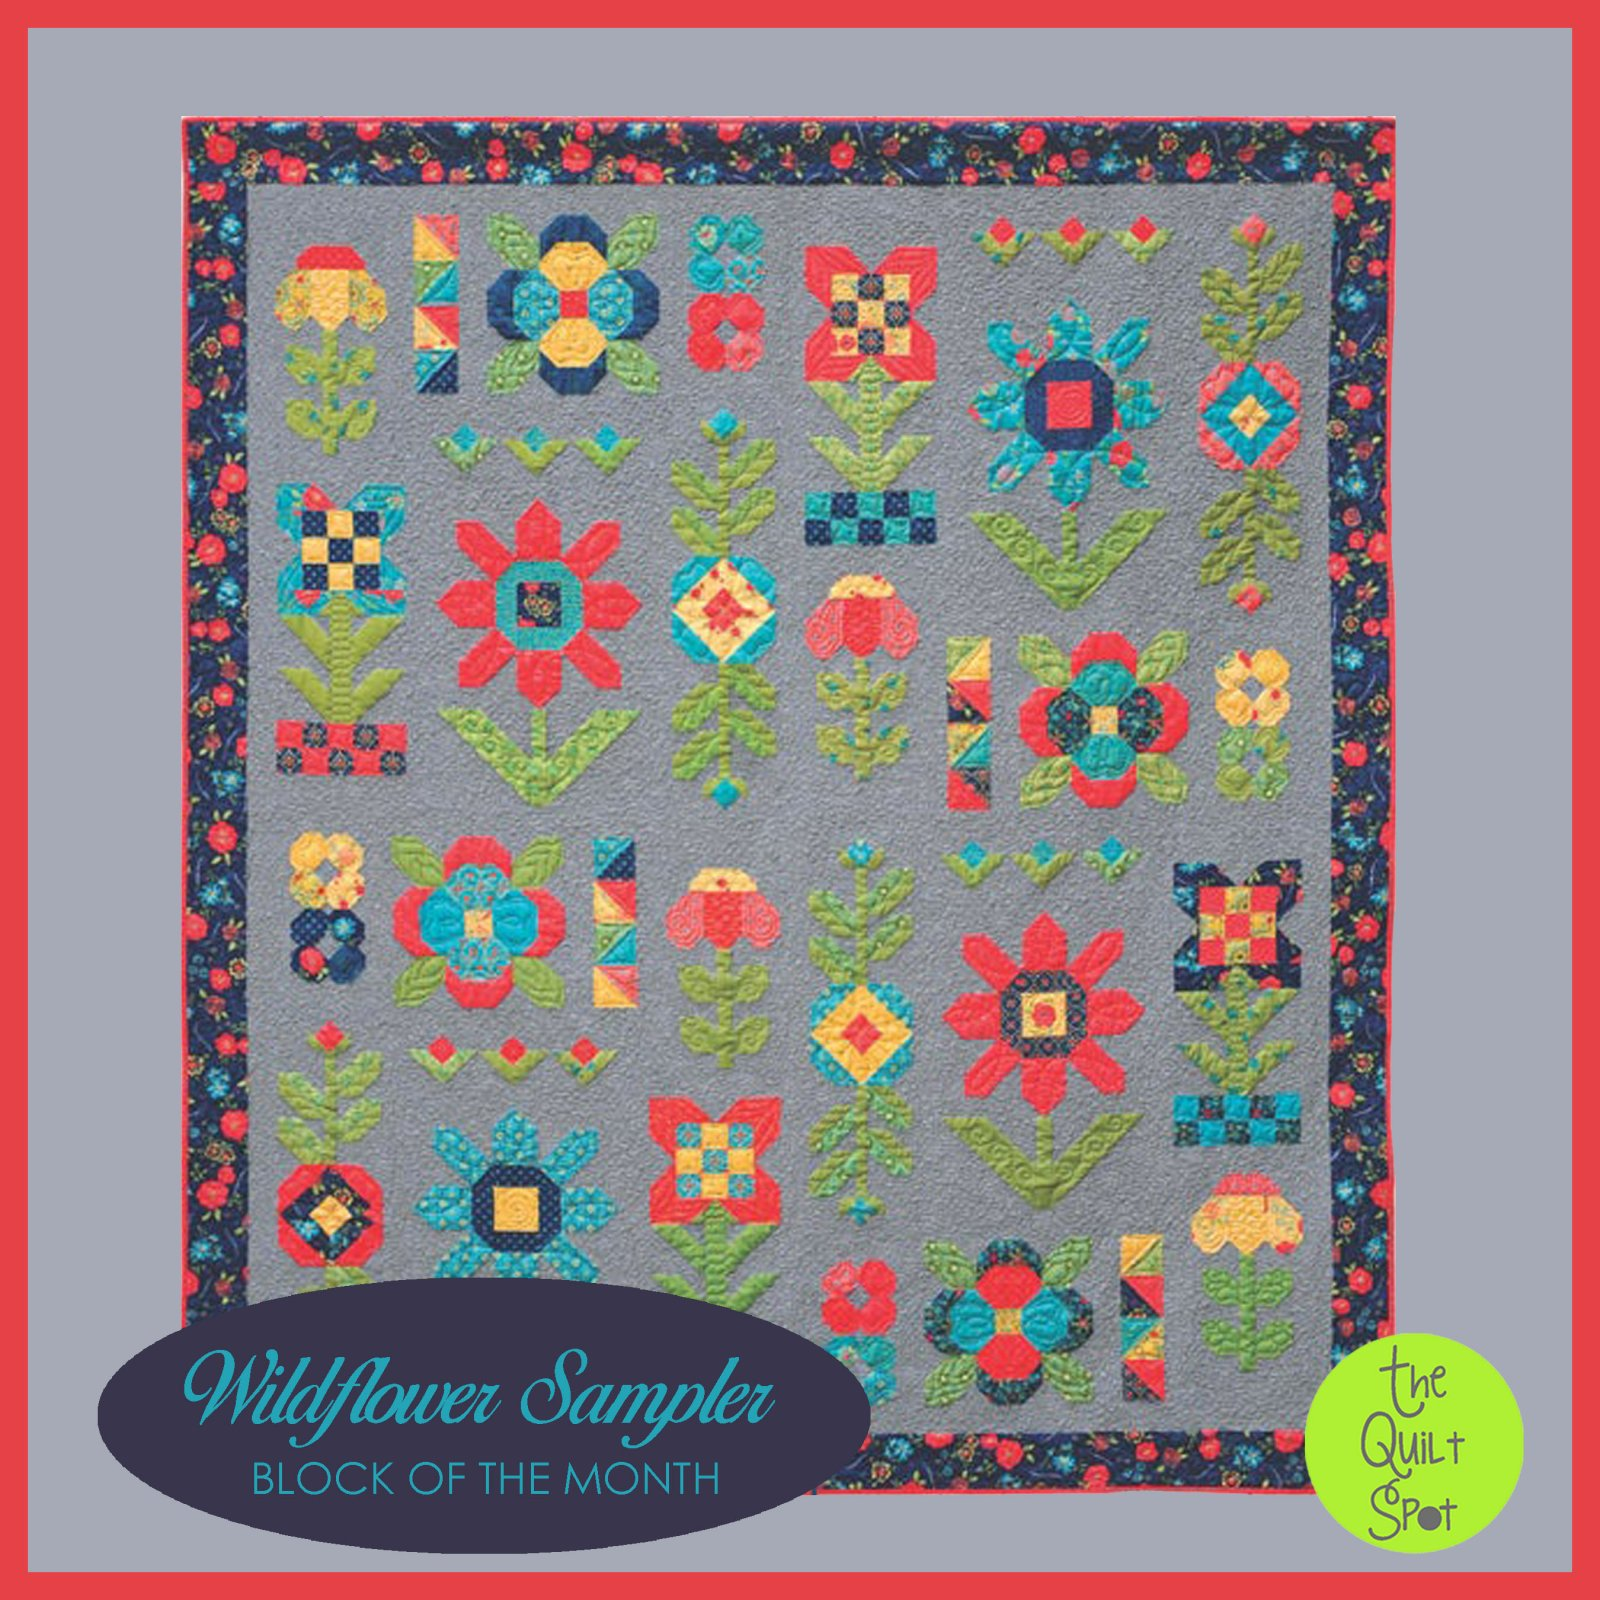 Wildflower Sampler Block of the Month by Anka's Treasures